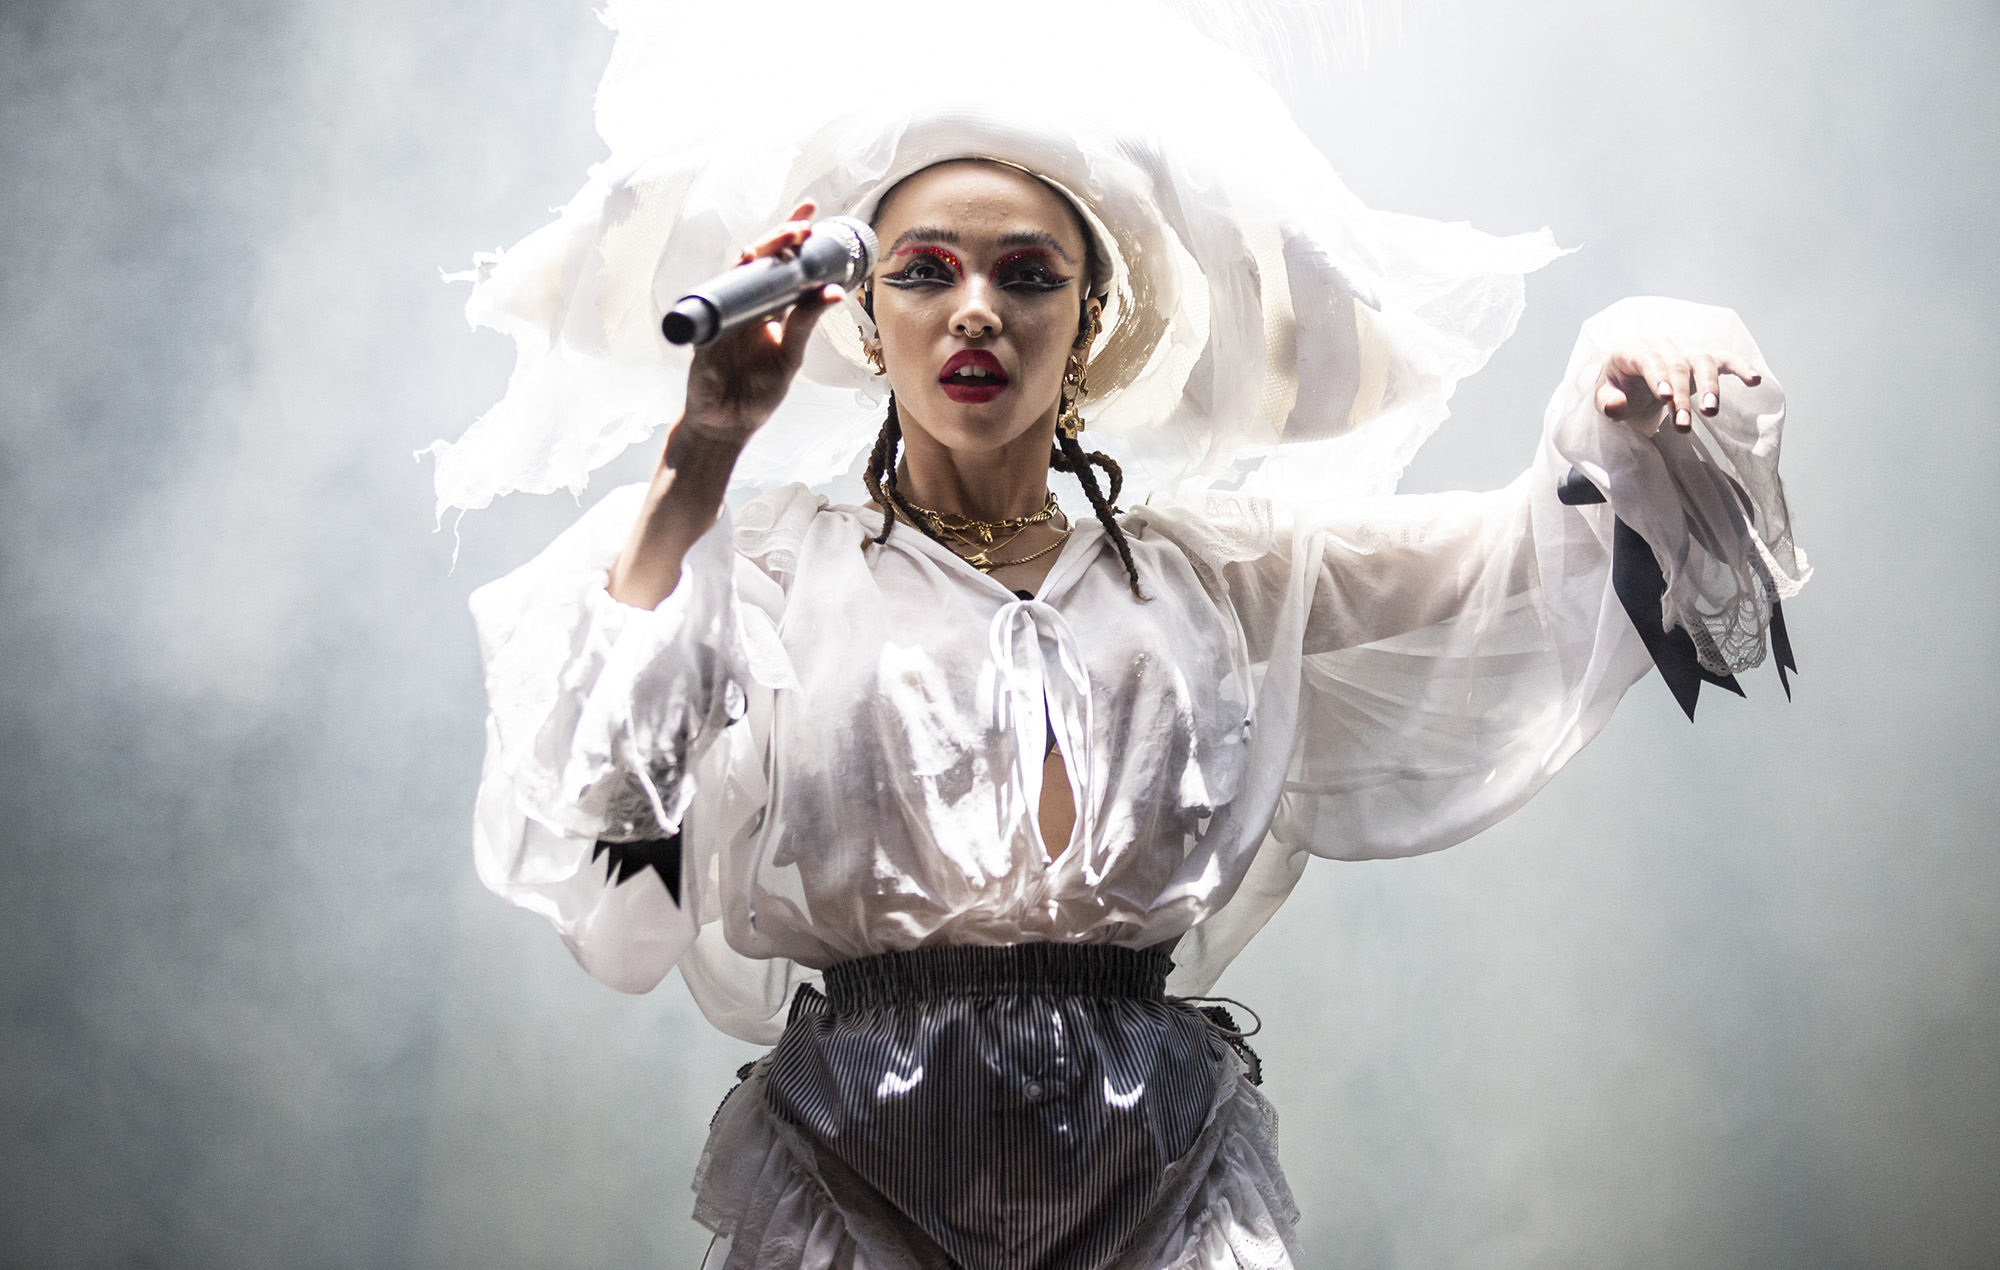 FKA twigs says she is working on a martial arts TV series